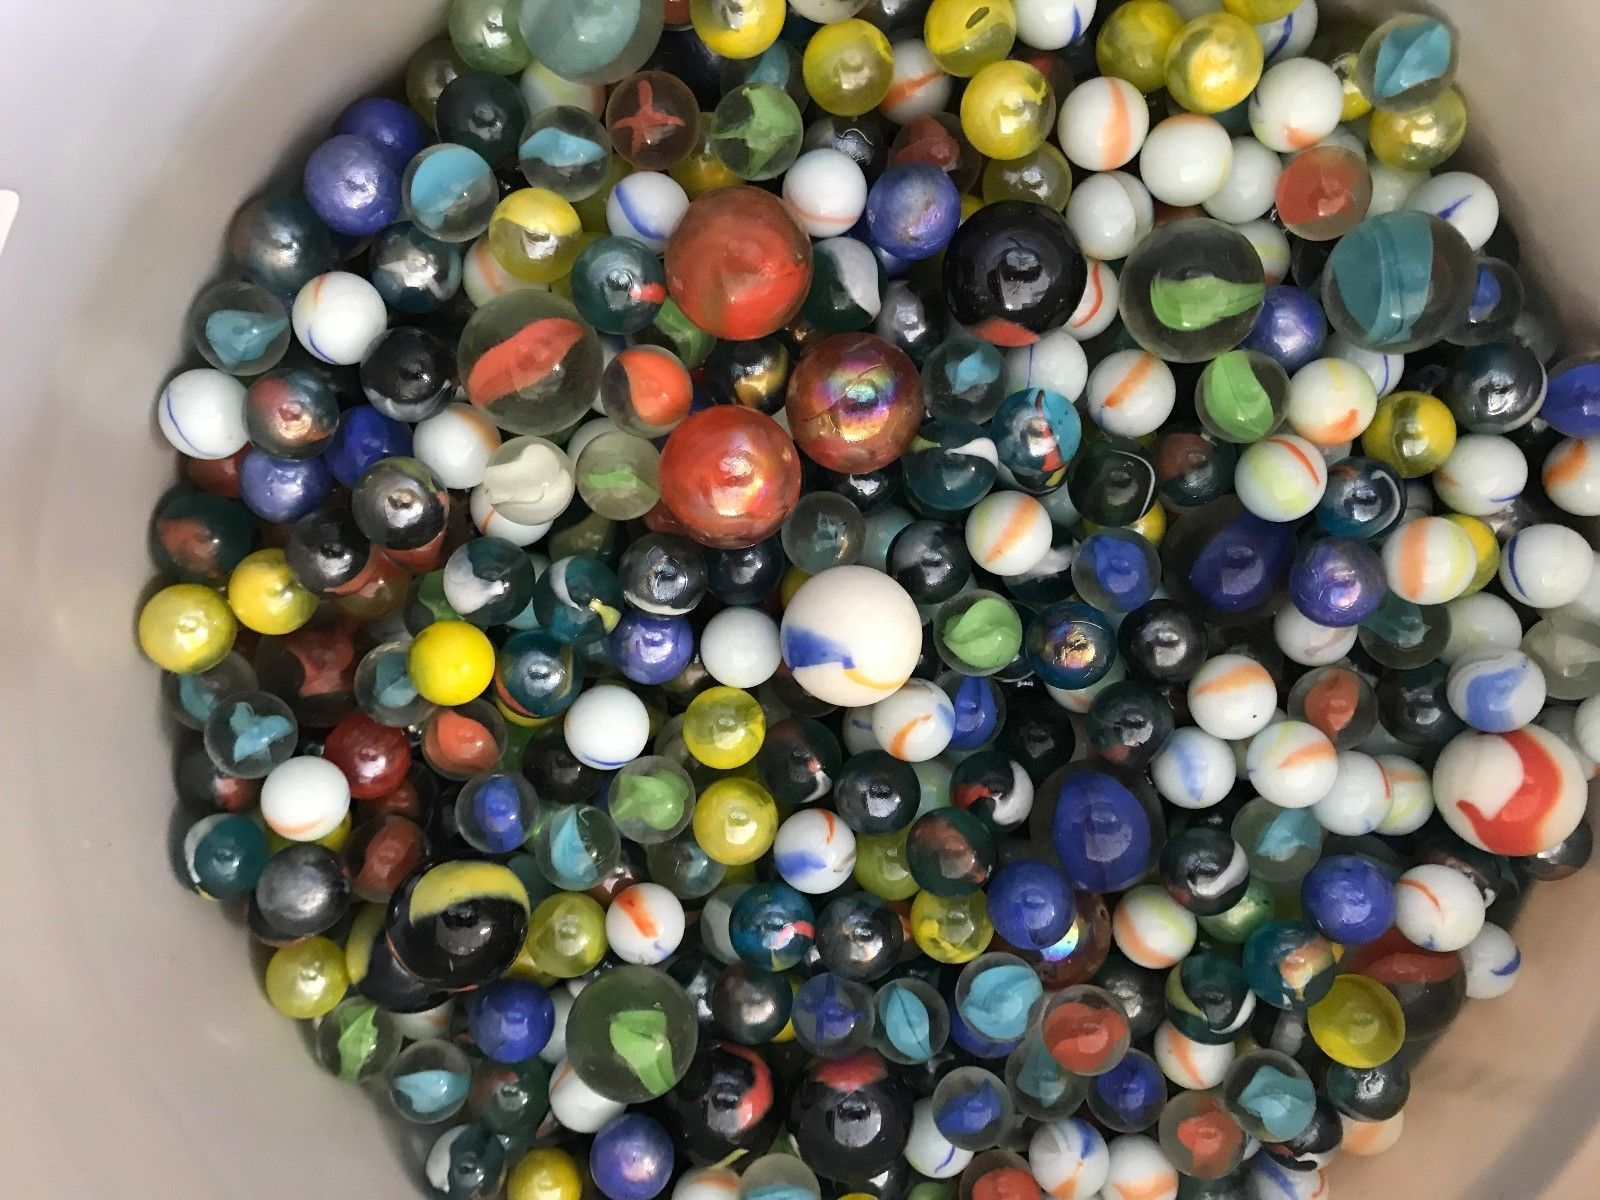 Marbles 58799 A Mixed Lot Of 250 New Glass Marbles > BUY